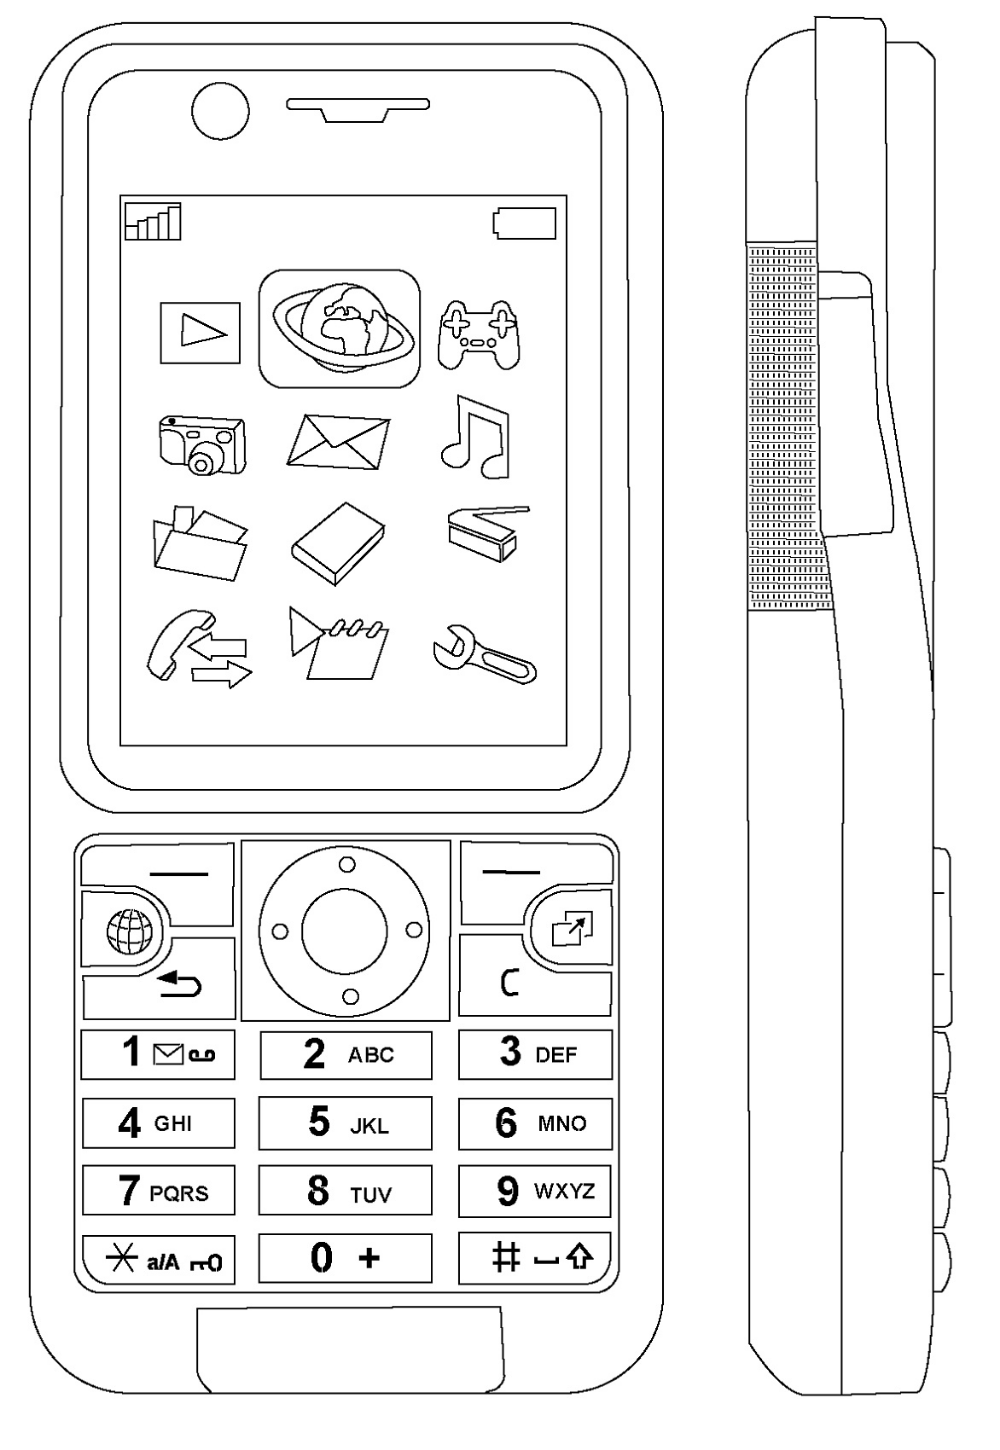 old cell phone coloring page k5 worksheets coloring pages coloring pages for kids leaf coloring page old cell phone coloring page k5